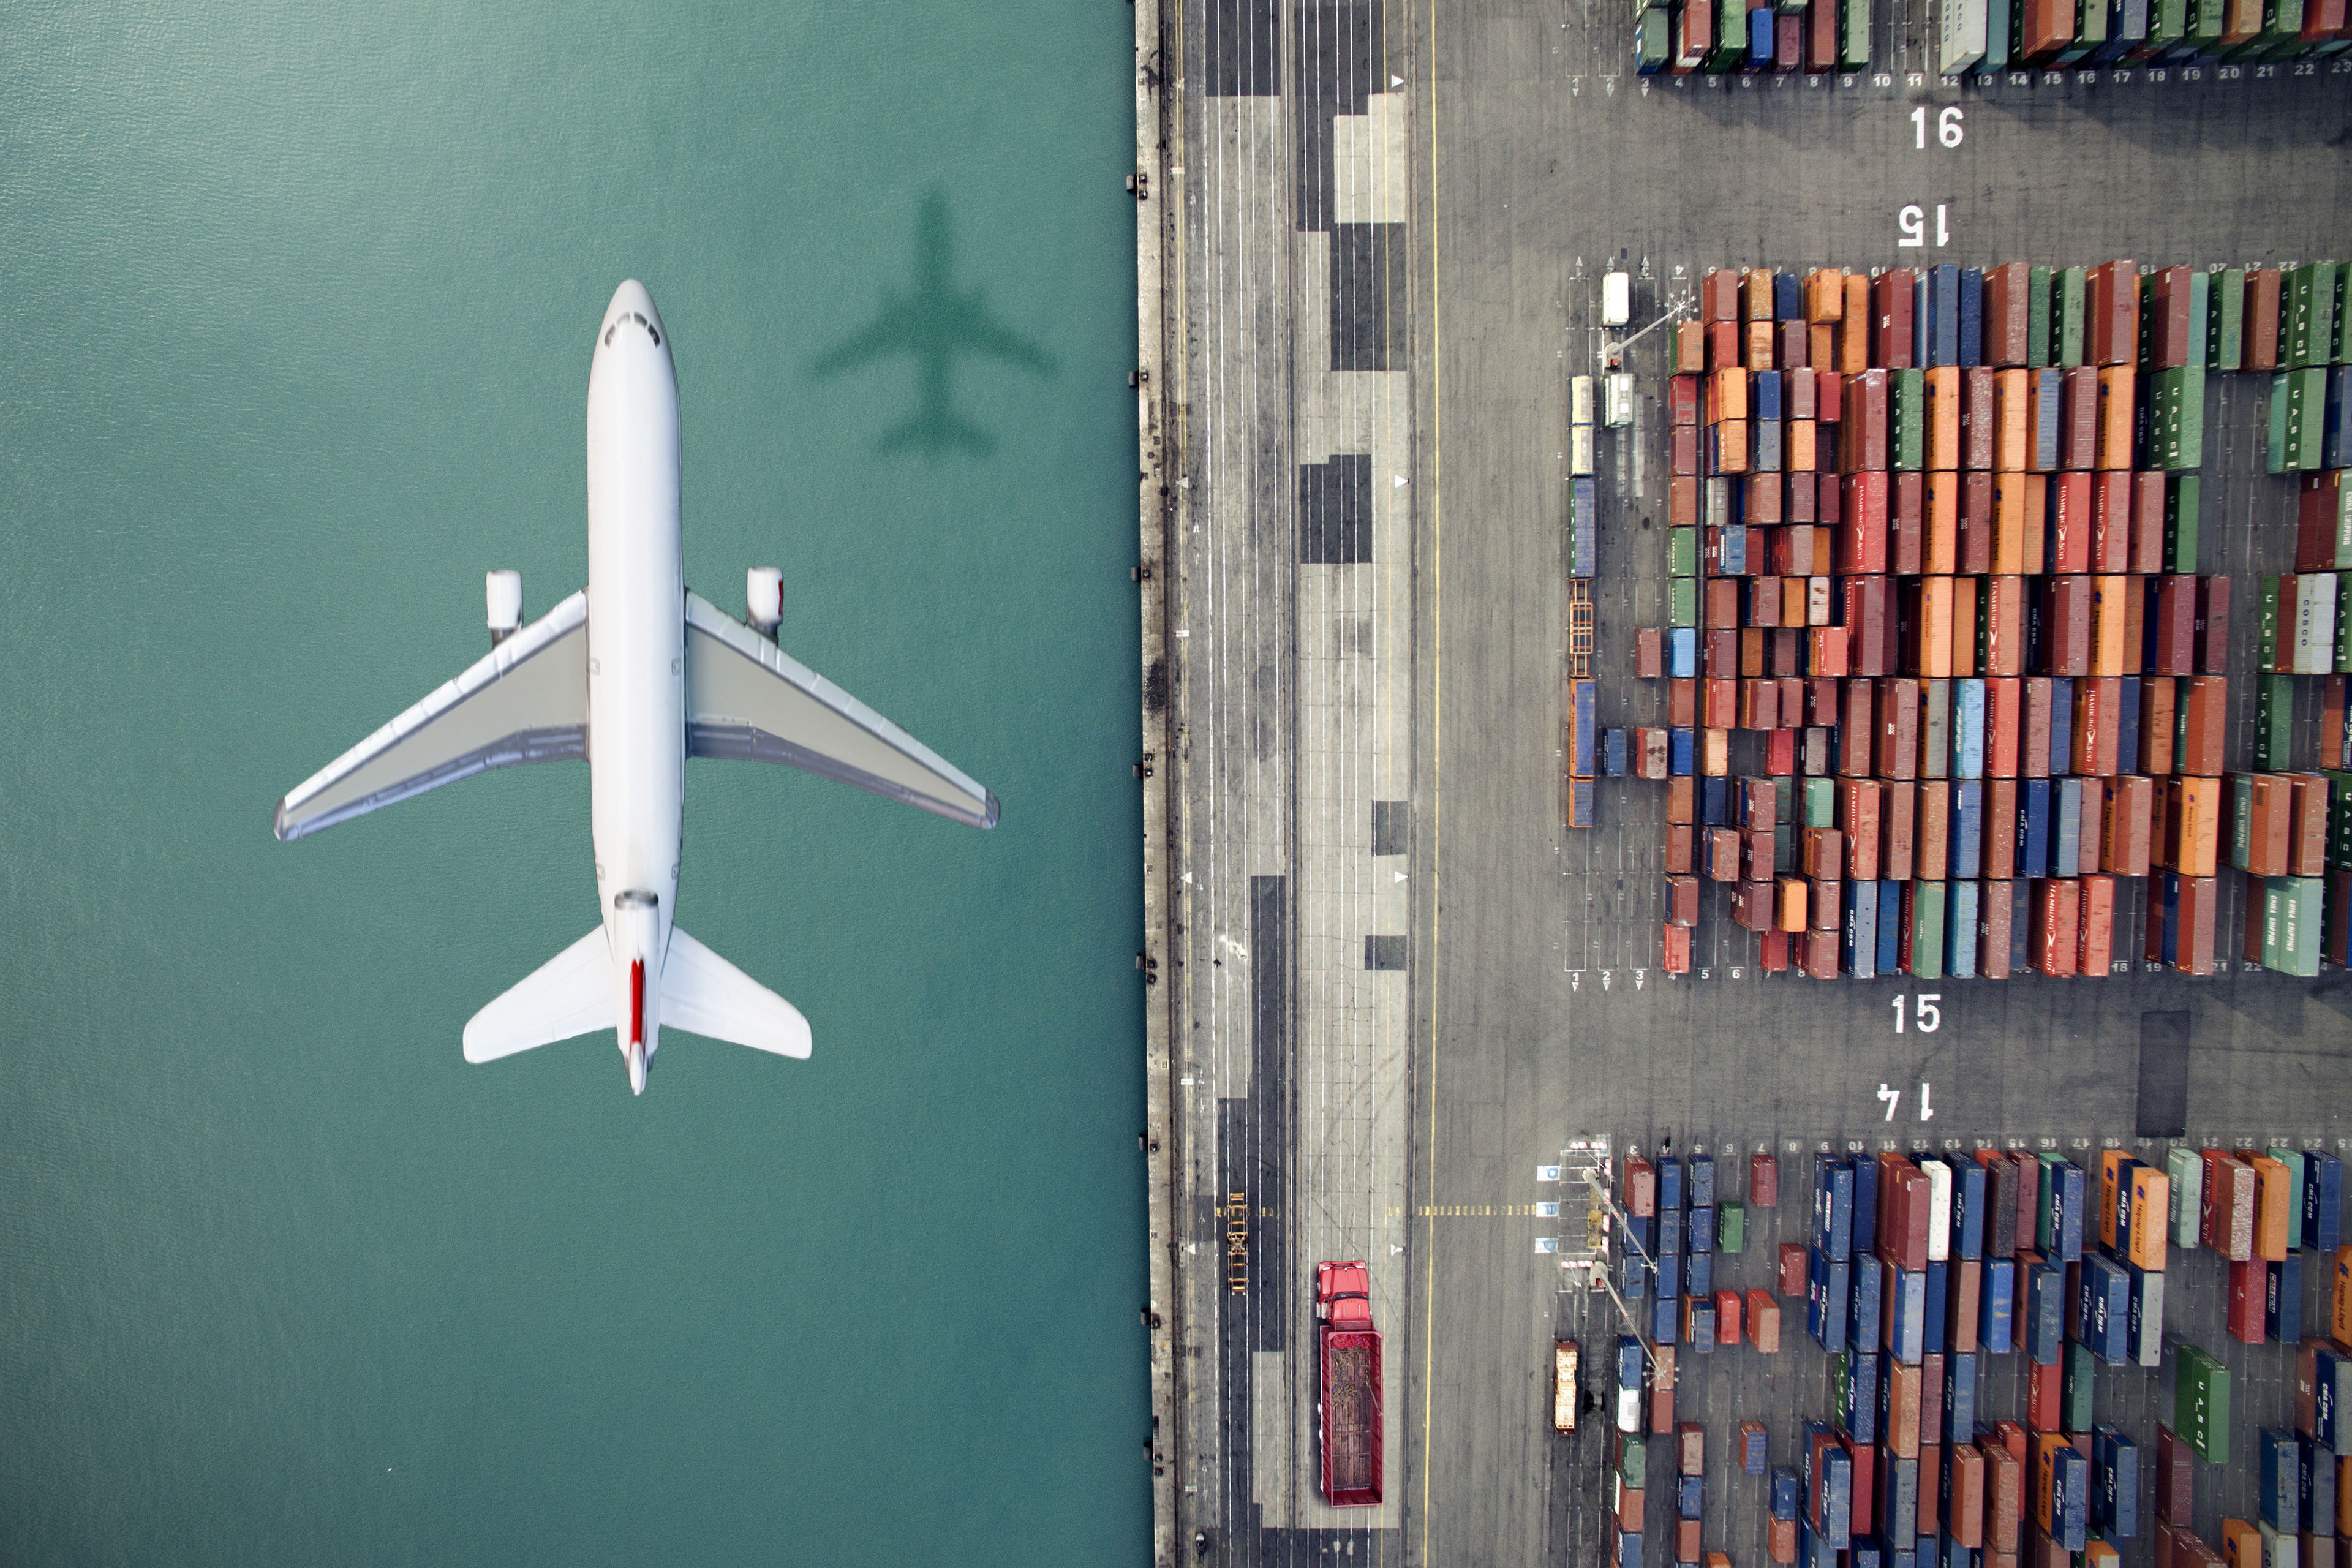 How transportation and logistics can position itself in a